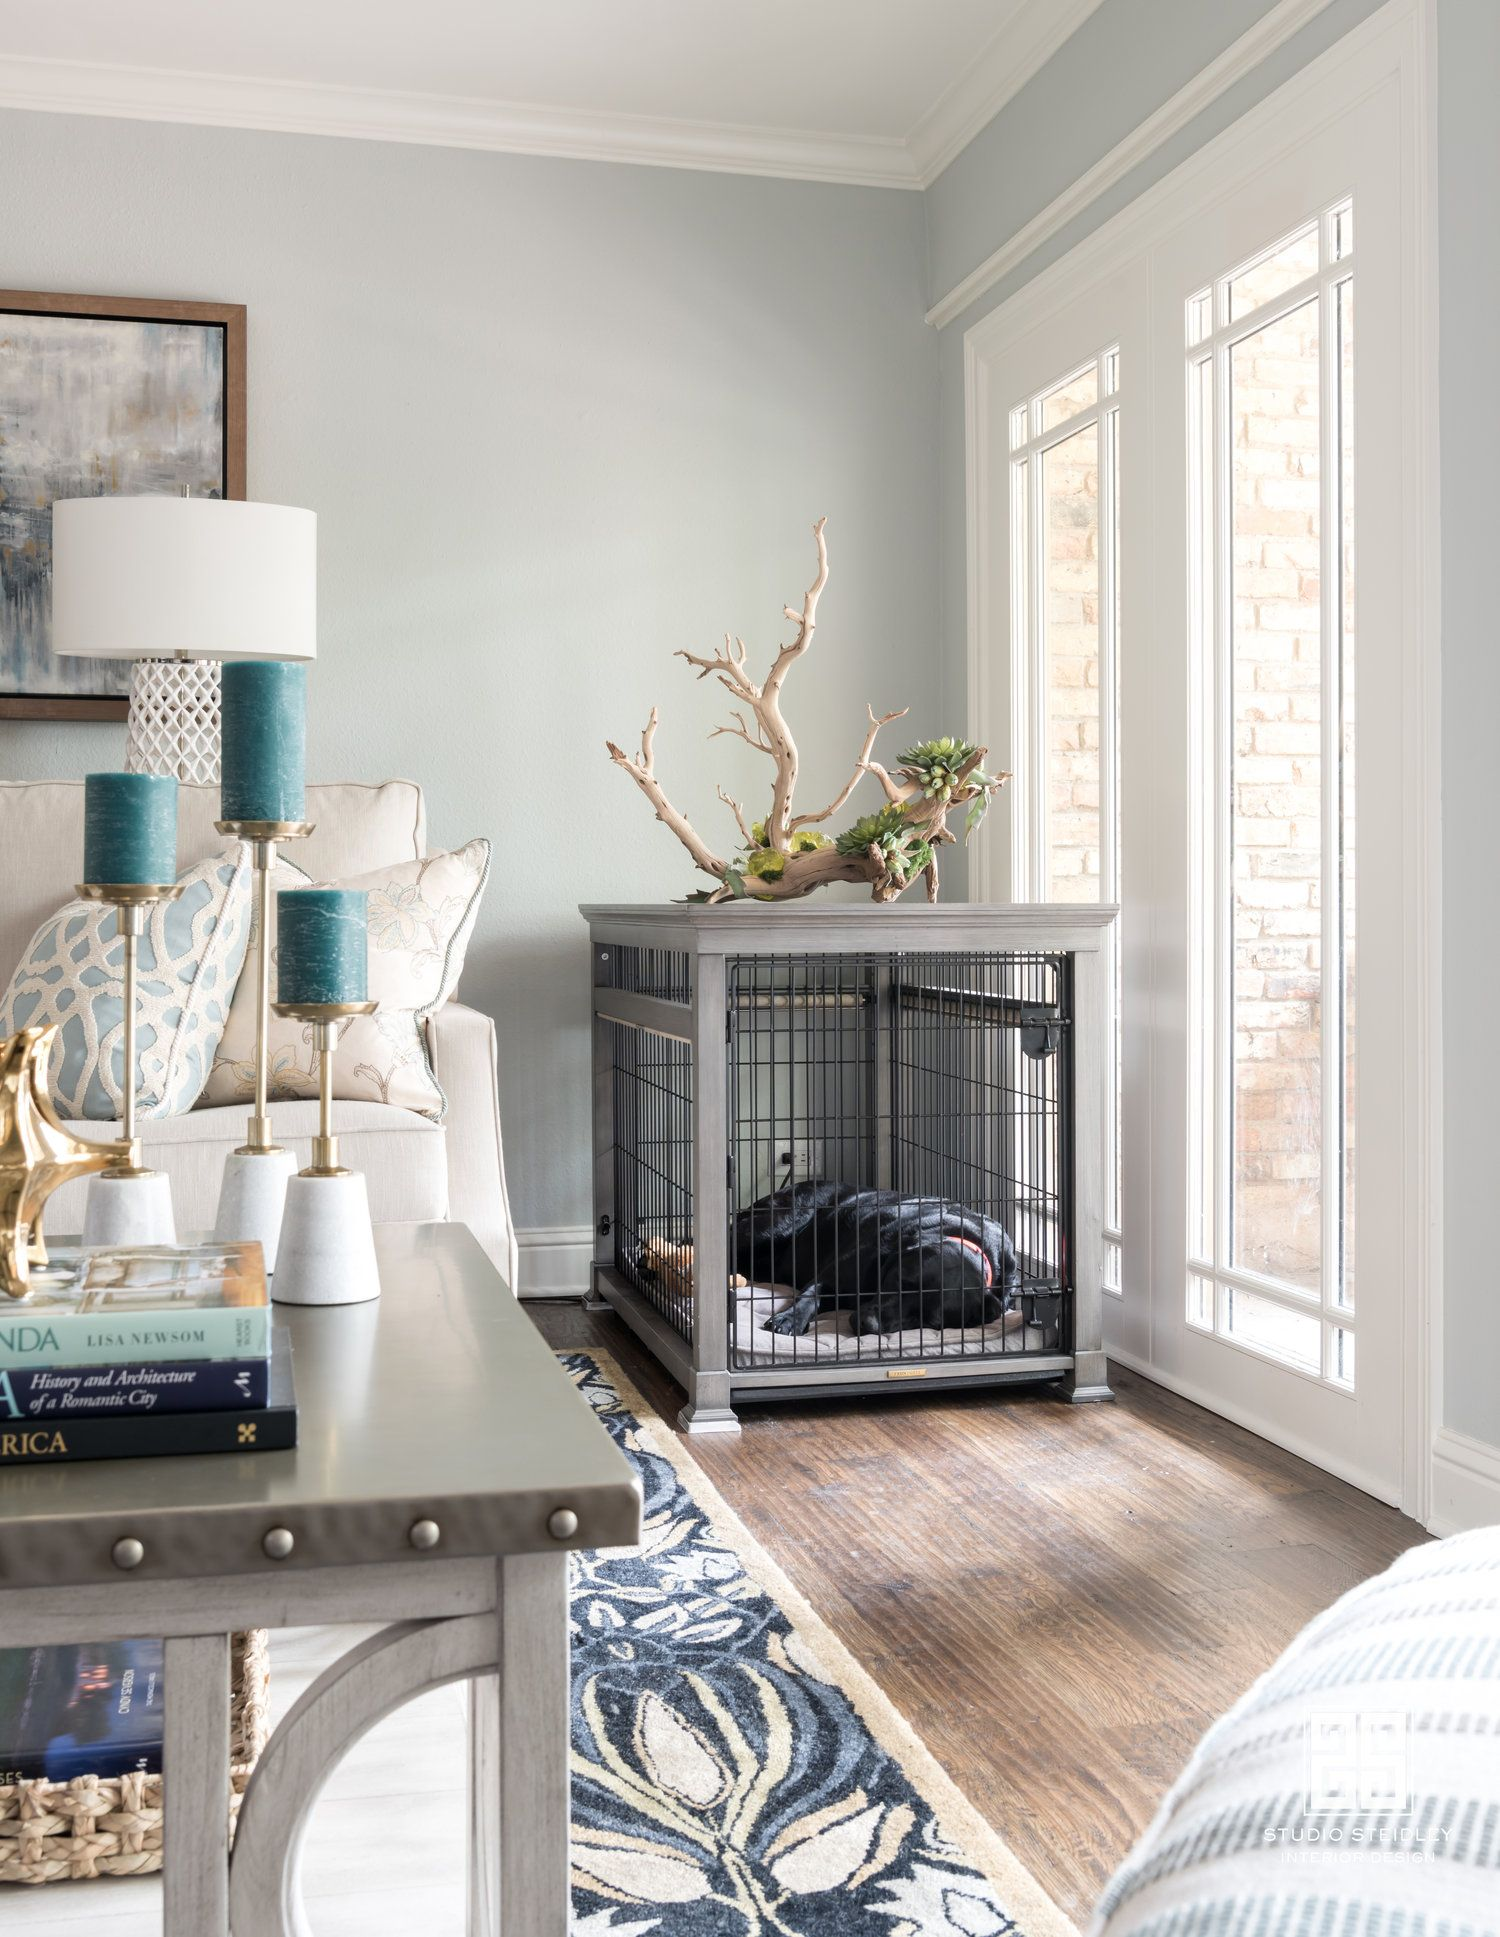 How to design around a Dog crate in your living room